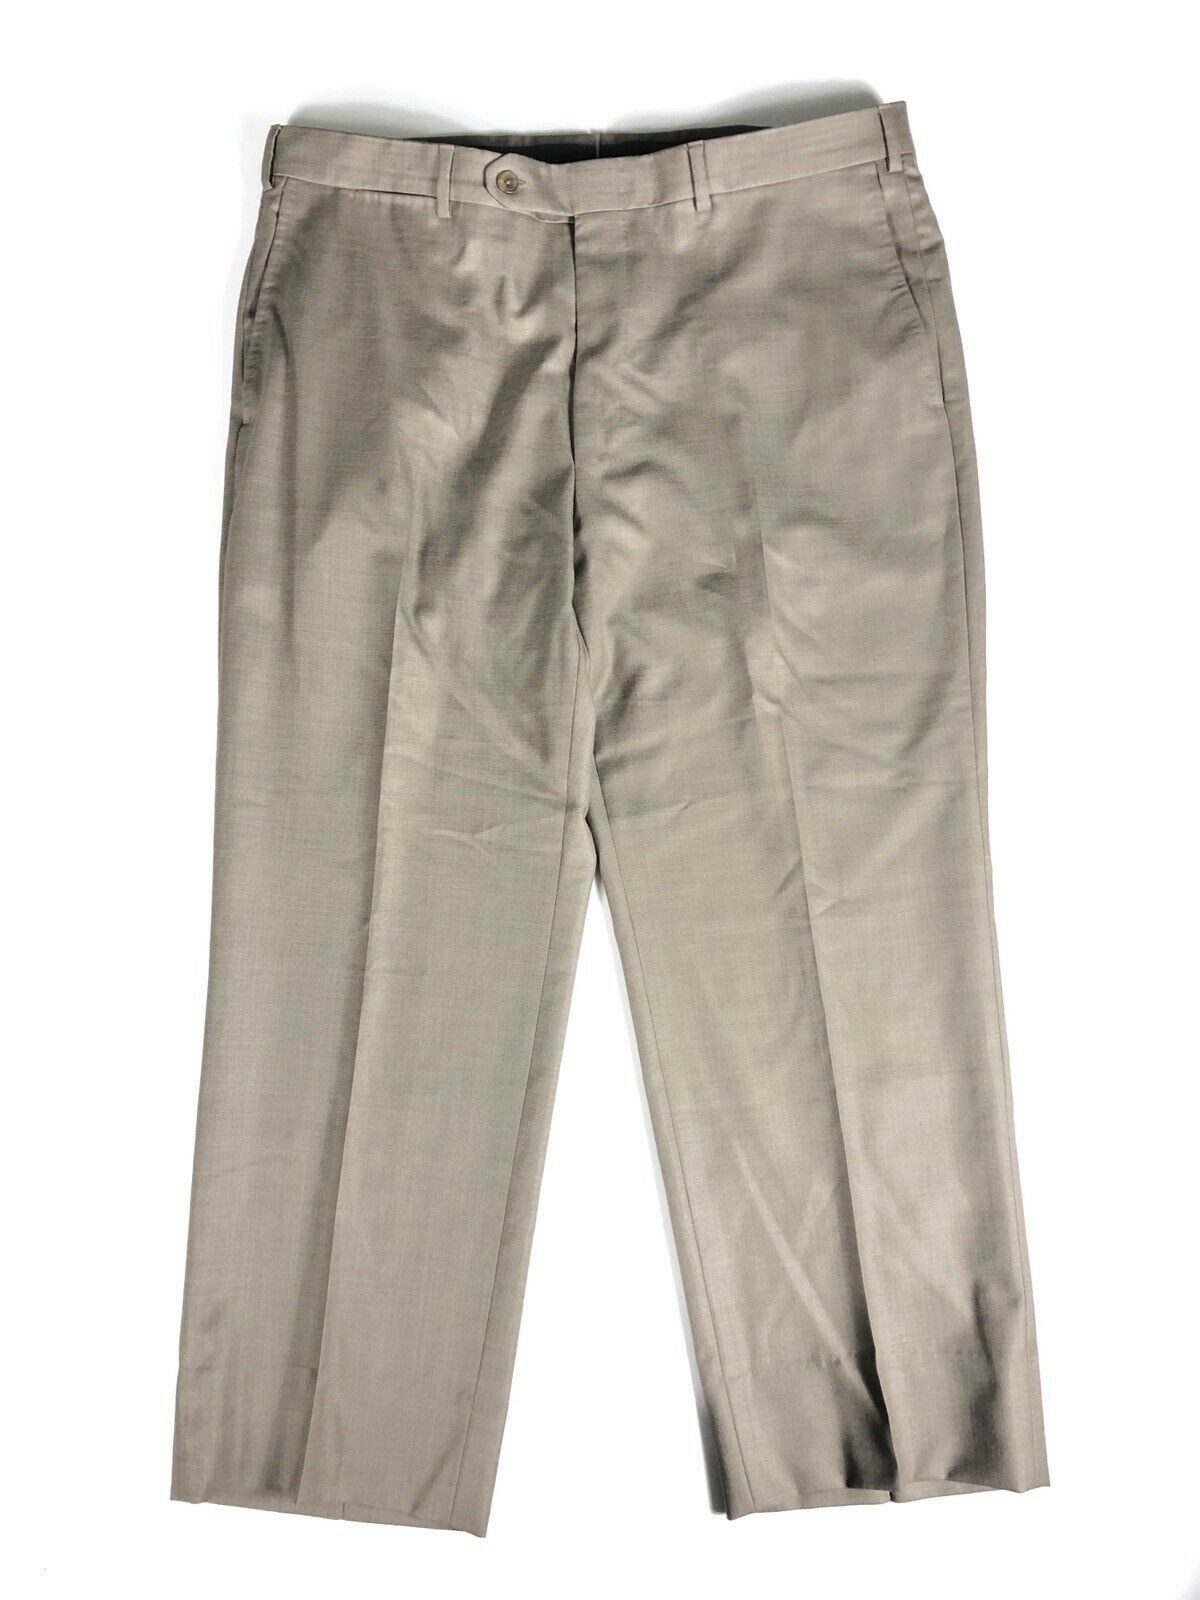 Ermenegildo Zegna 100% Wool Fit Rom Pants 54R Altered